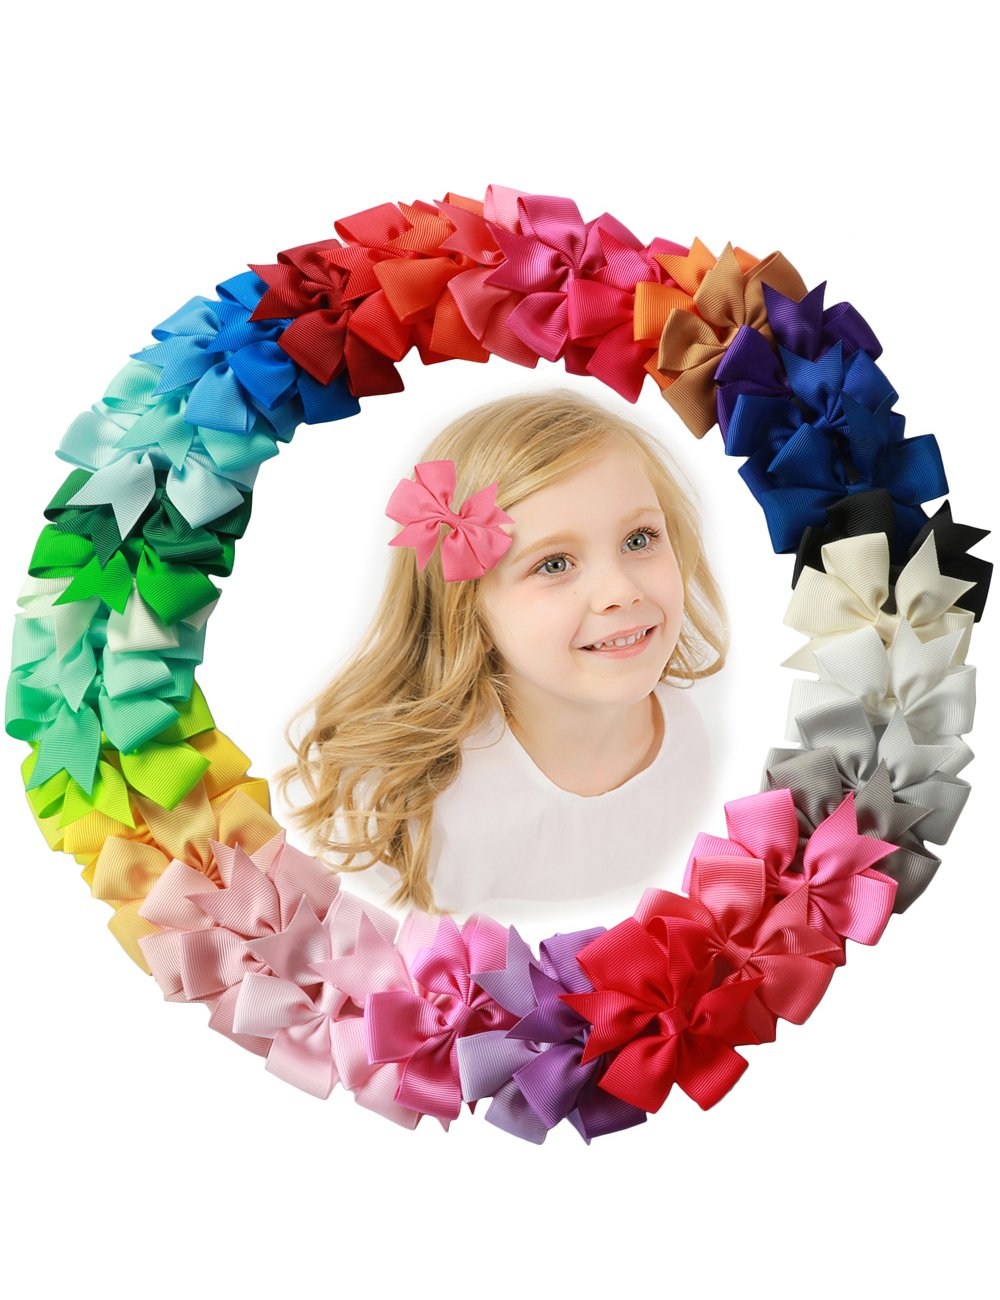 fani 40 Pcs 3 inch Grosgrain Ribbon Pinwheel Boutique Hair Bows Clips For Baby Girls Teens Toddlers Kids Children with 40 Colors